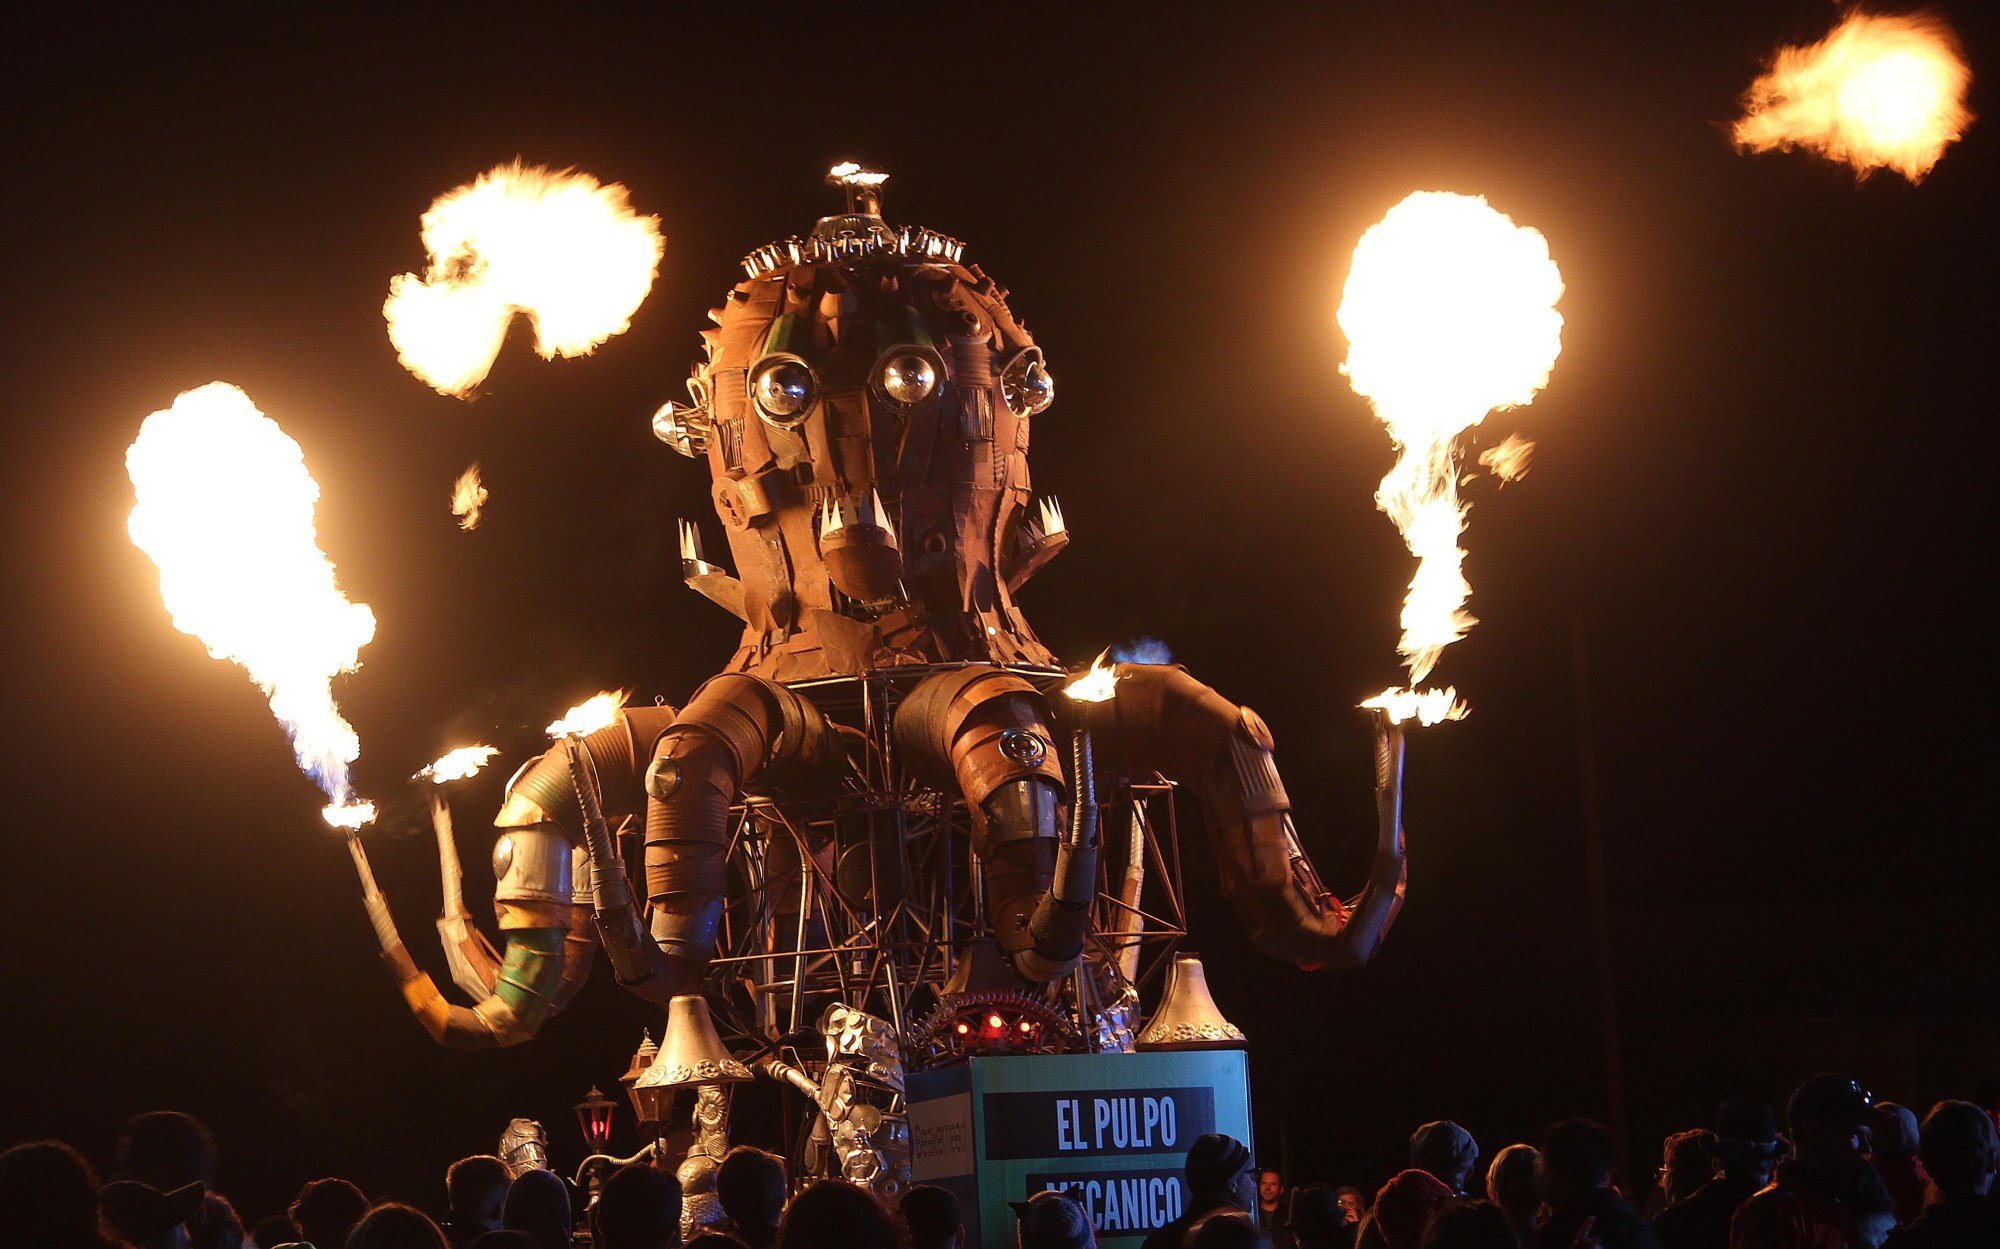 Beakerhead, Calgary, photography, photos, El Pulpo Mecanico, octopus, flames, recycled